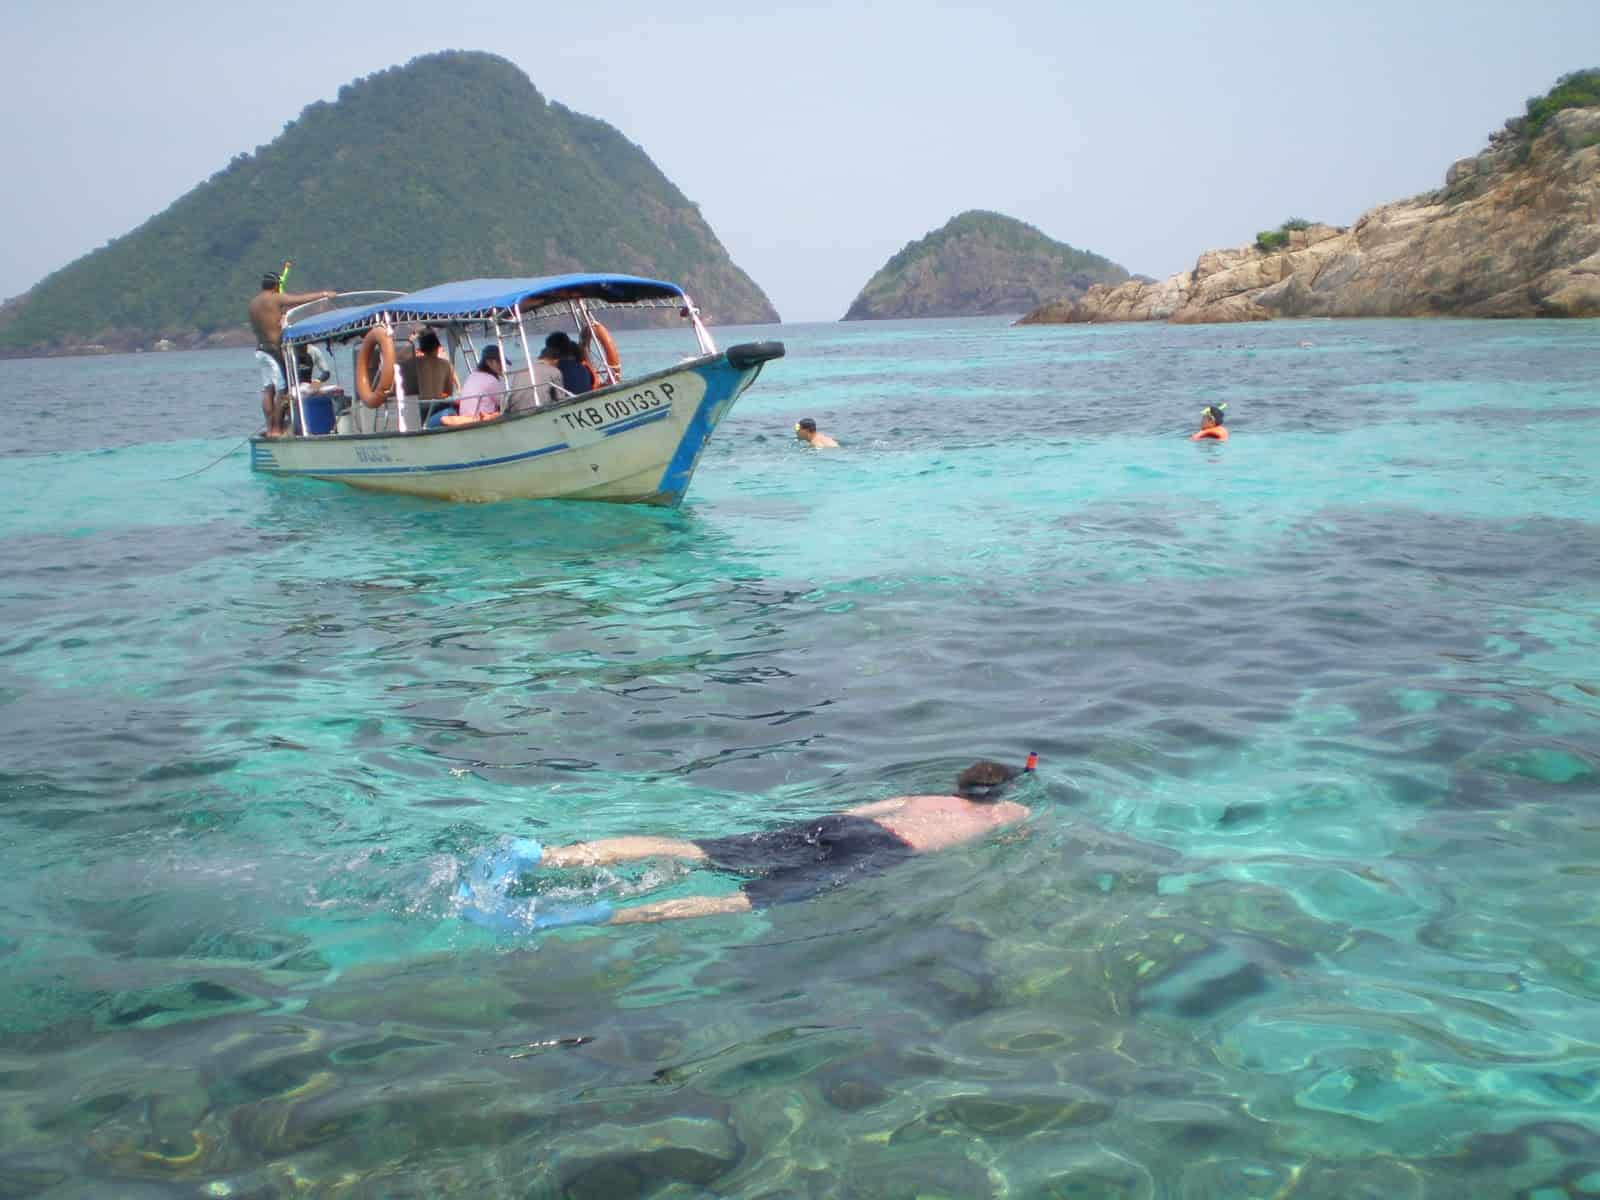 Pulau Rawa Activities: Island Hopping